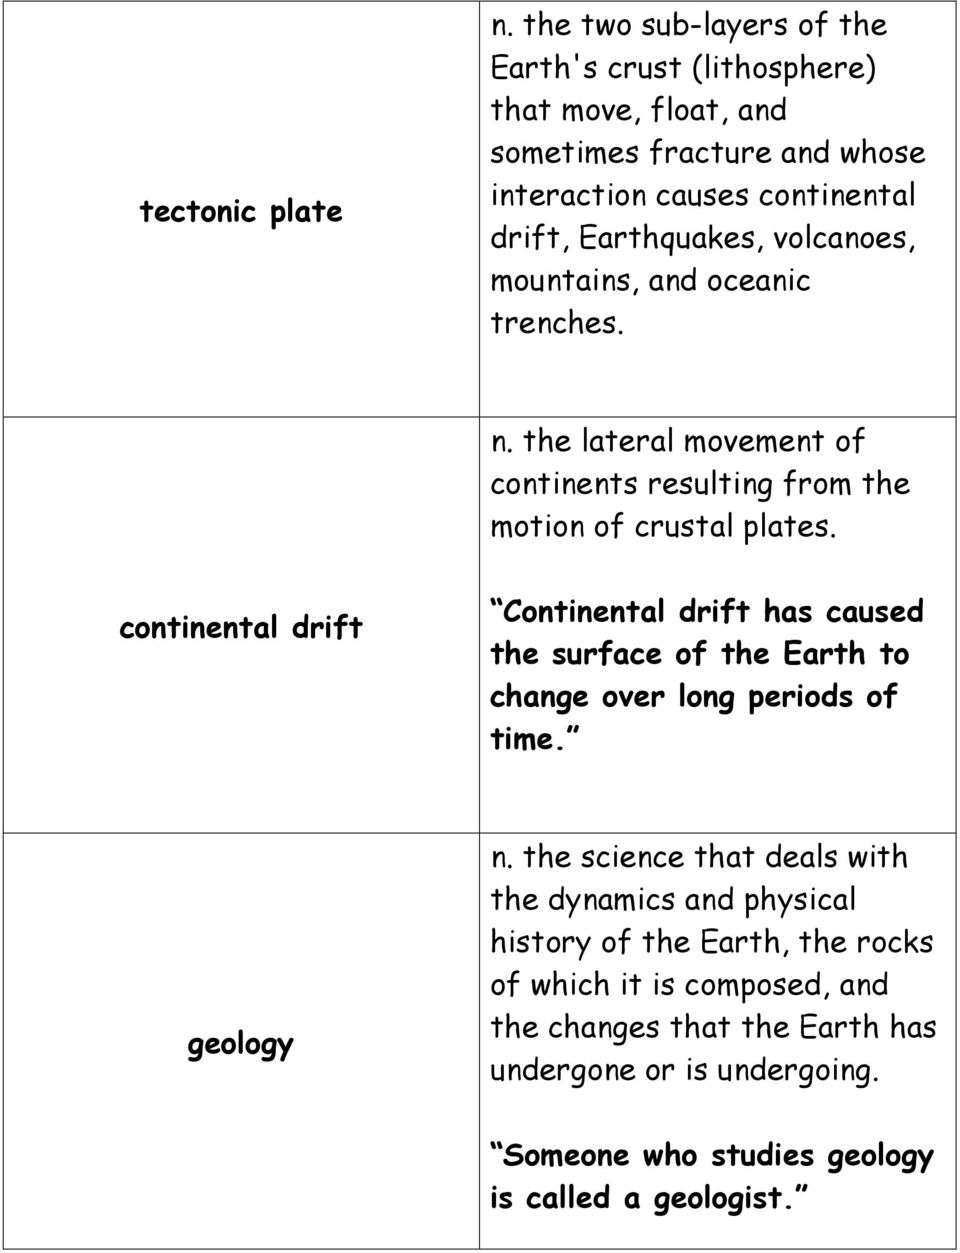 volcanoes, mountains, and oceanic trenches. n. the lateral movement of continents resulting from the motion of crustal plates.